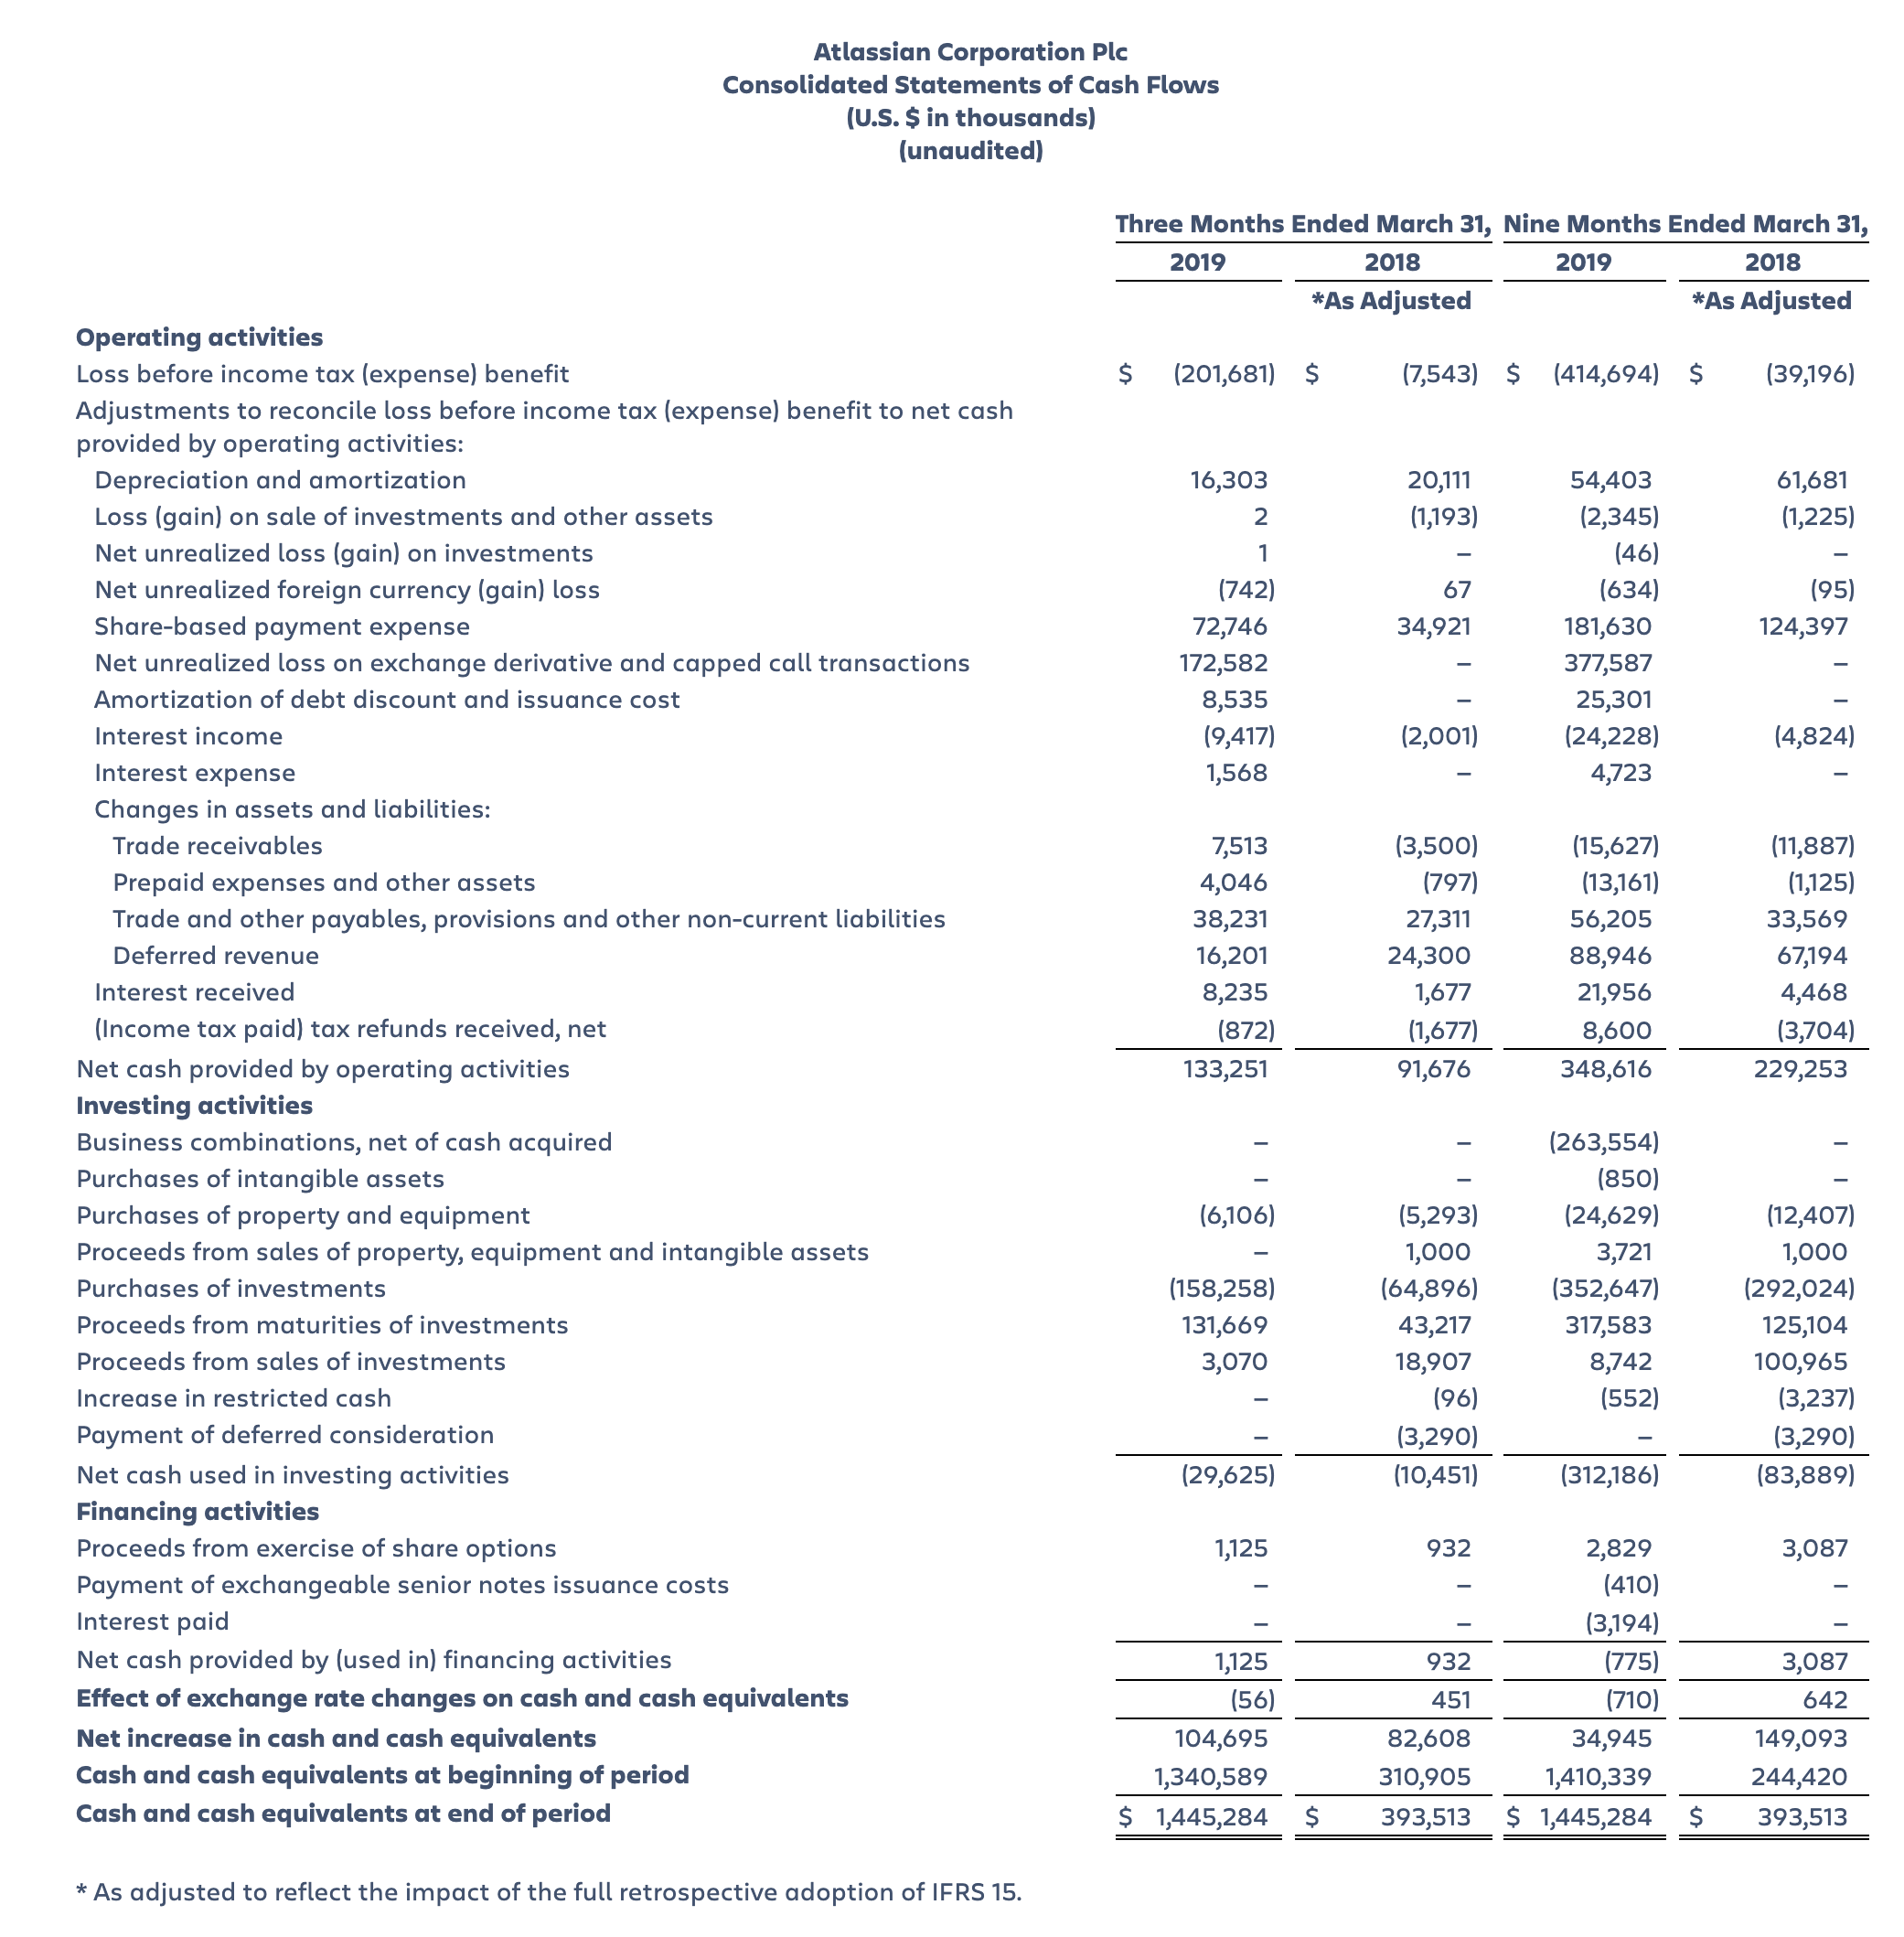 Atlassian Corp Plc Consolidated Statements of Cash Flow